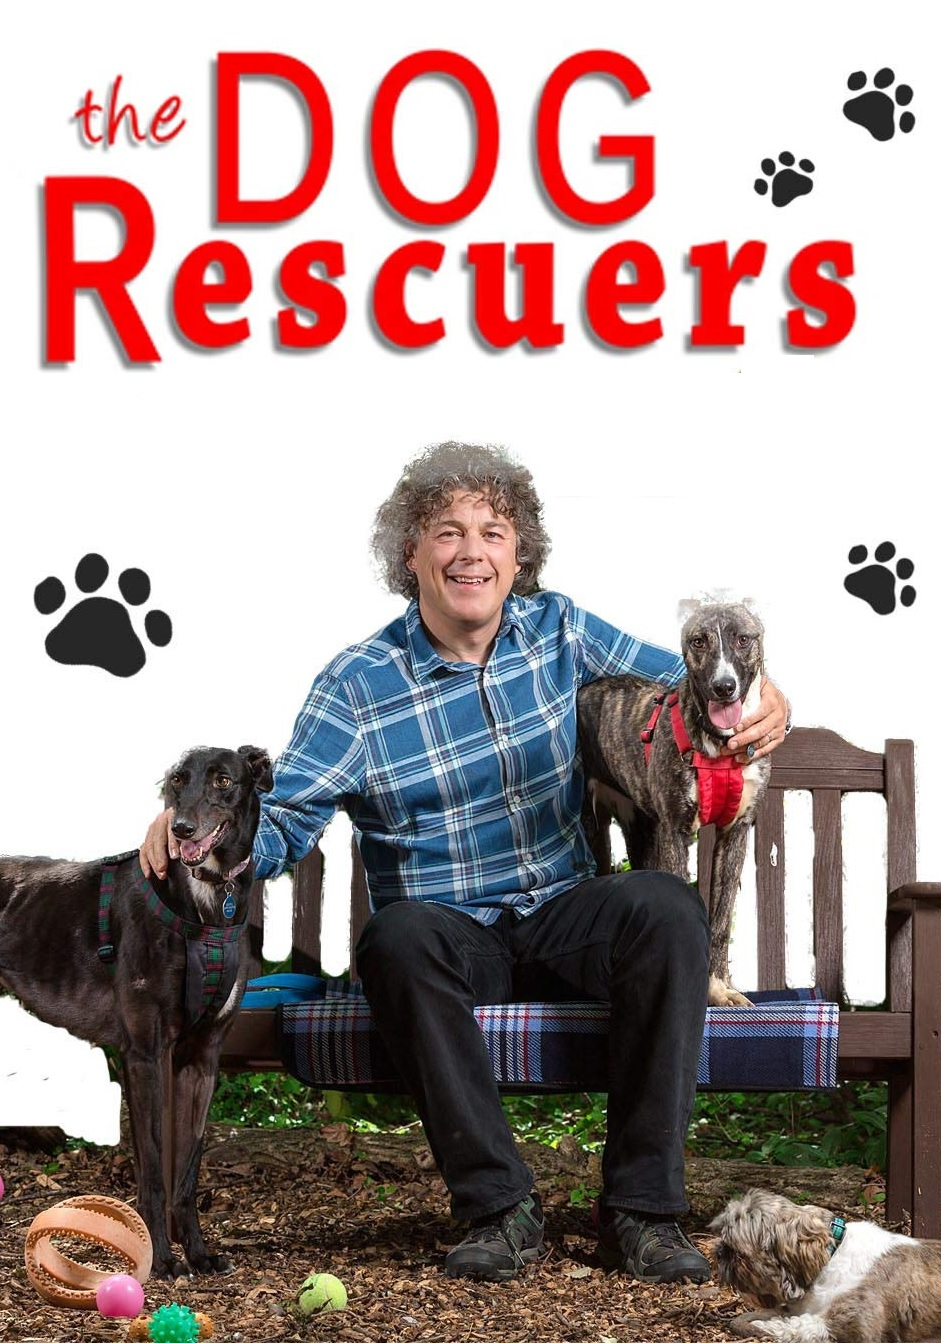 The Dog Rescuers on FREECABLE TV